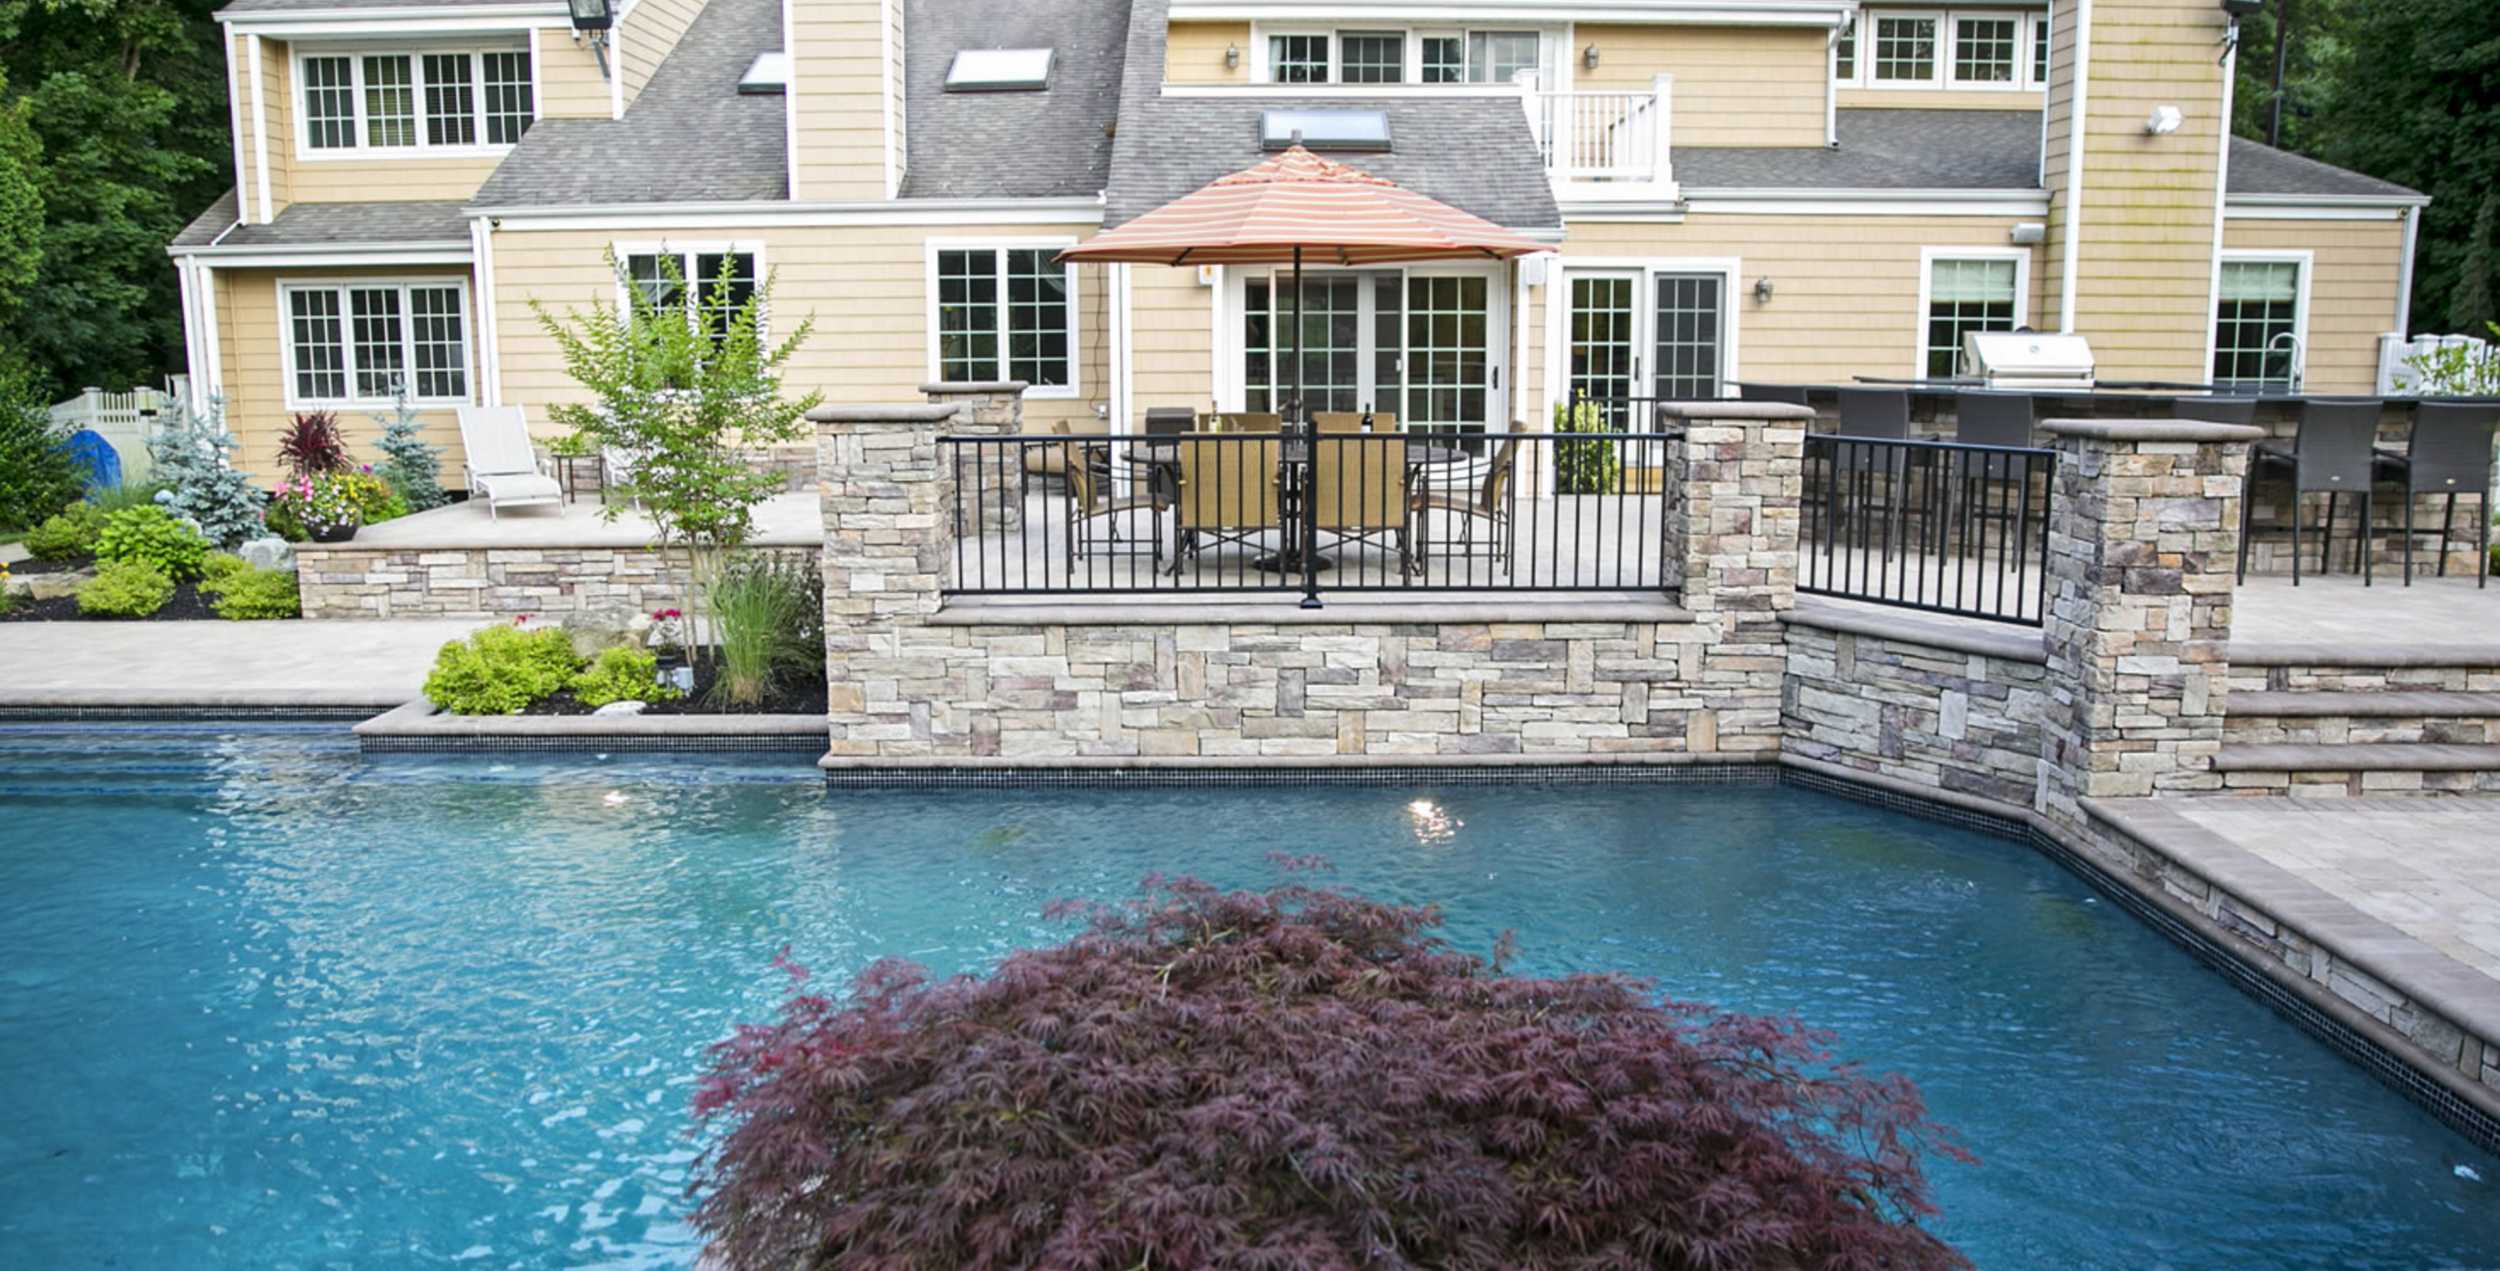 5 Landscaping Tips for Avoiding Common Patio and Deck Hazards in Southampton, NY